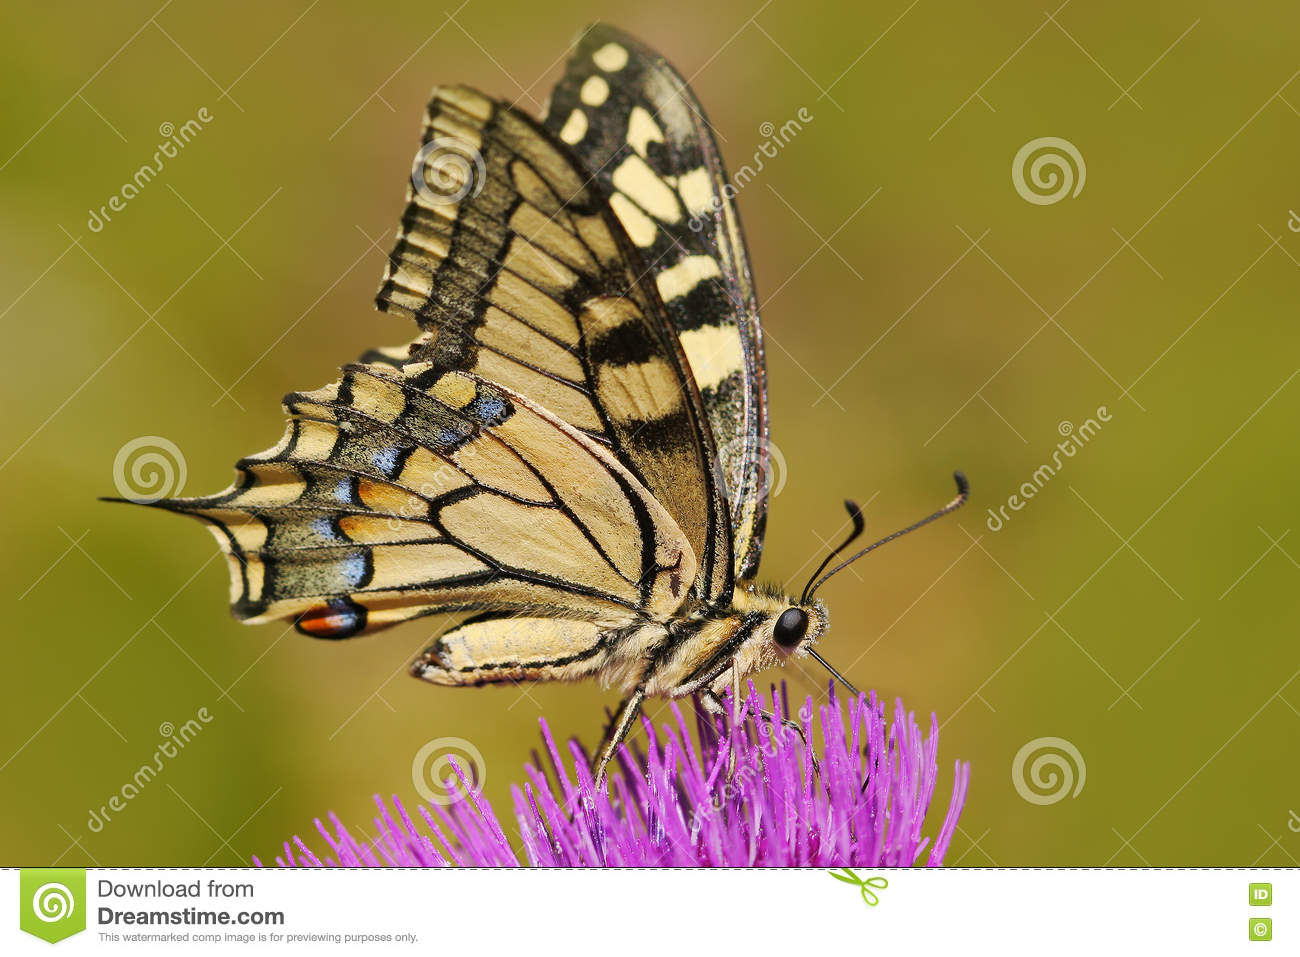 Old World swallowtail, Papilio machaon, butterfly sitting on the pink flower in the nature. Summer scene from the meadow.